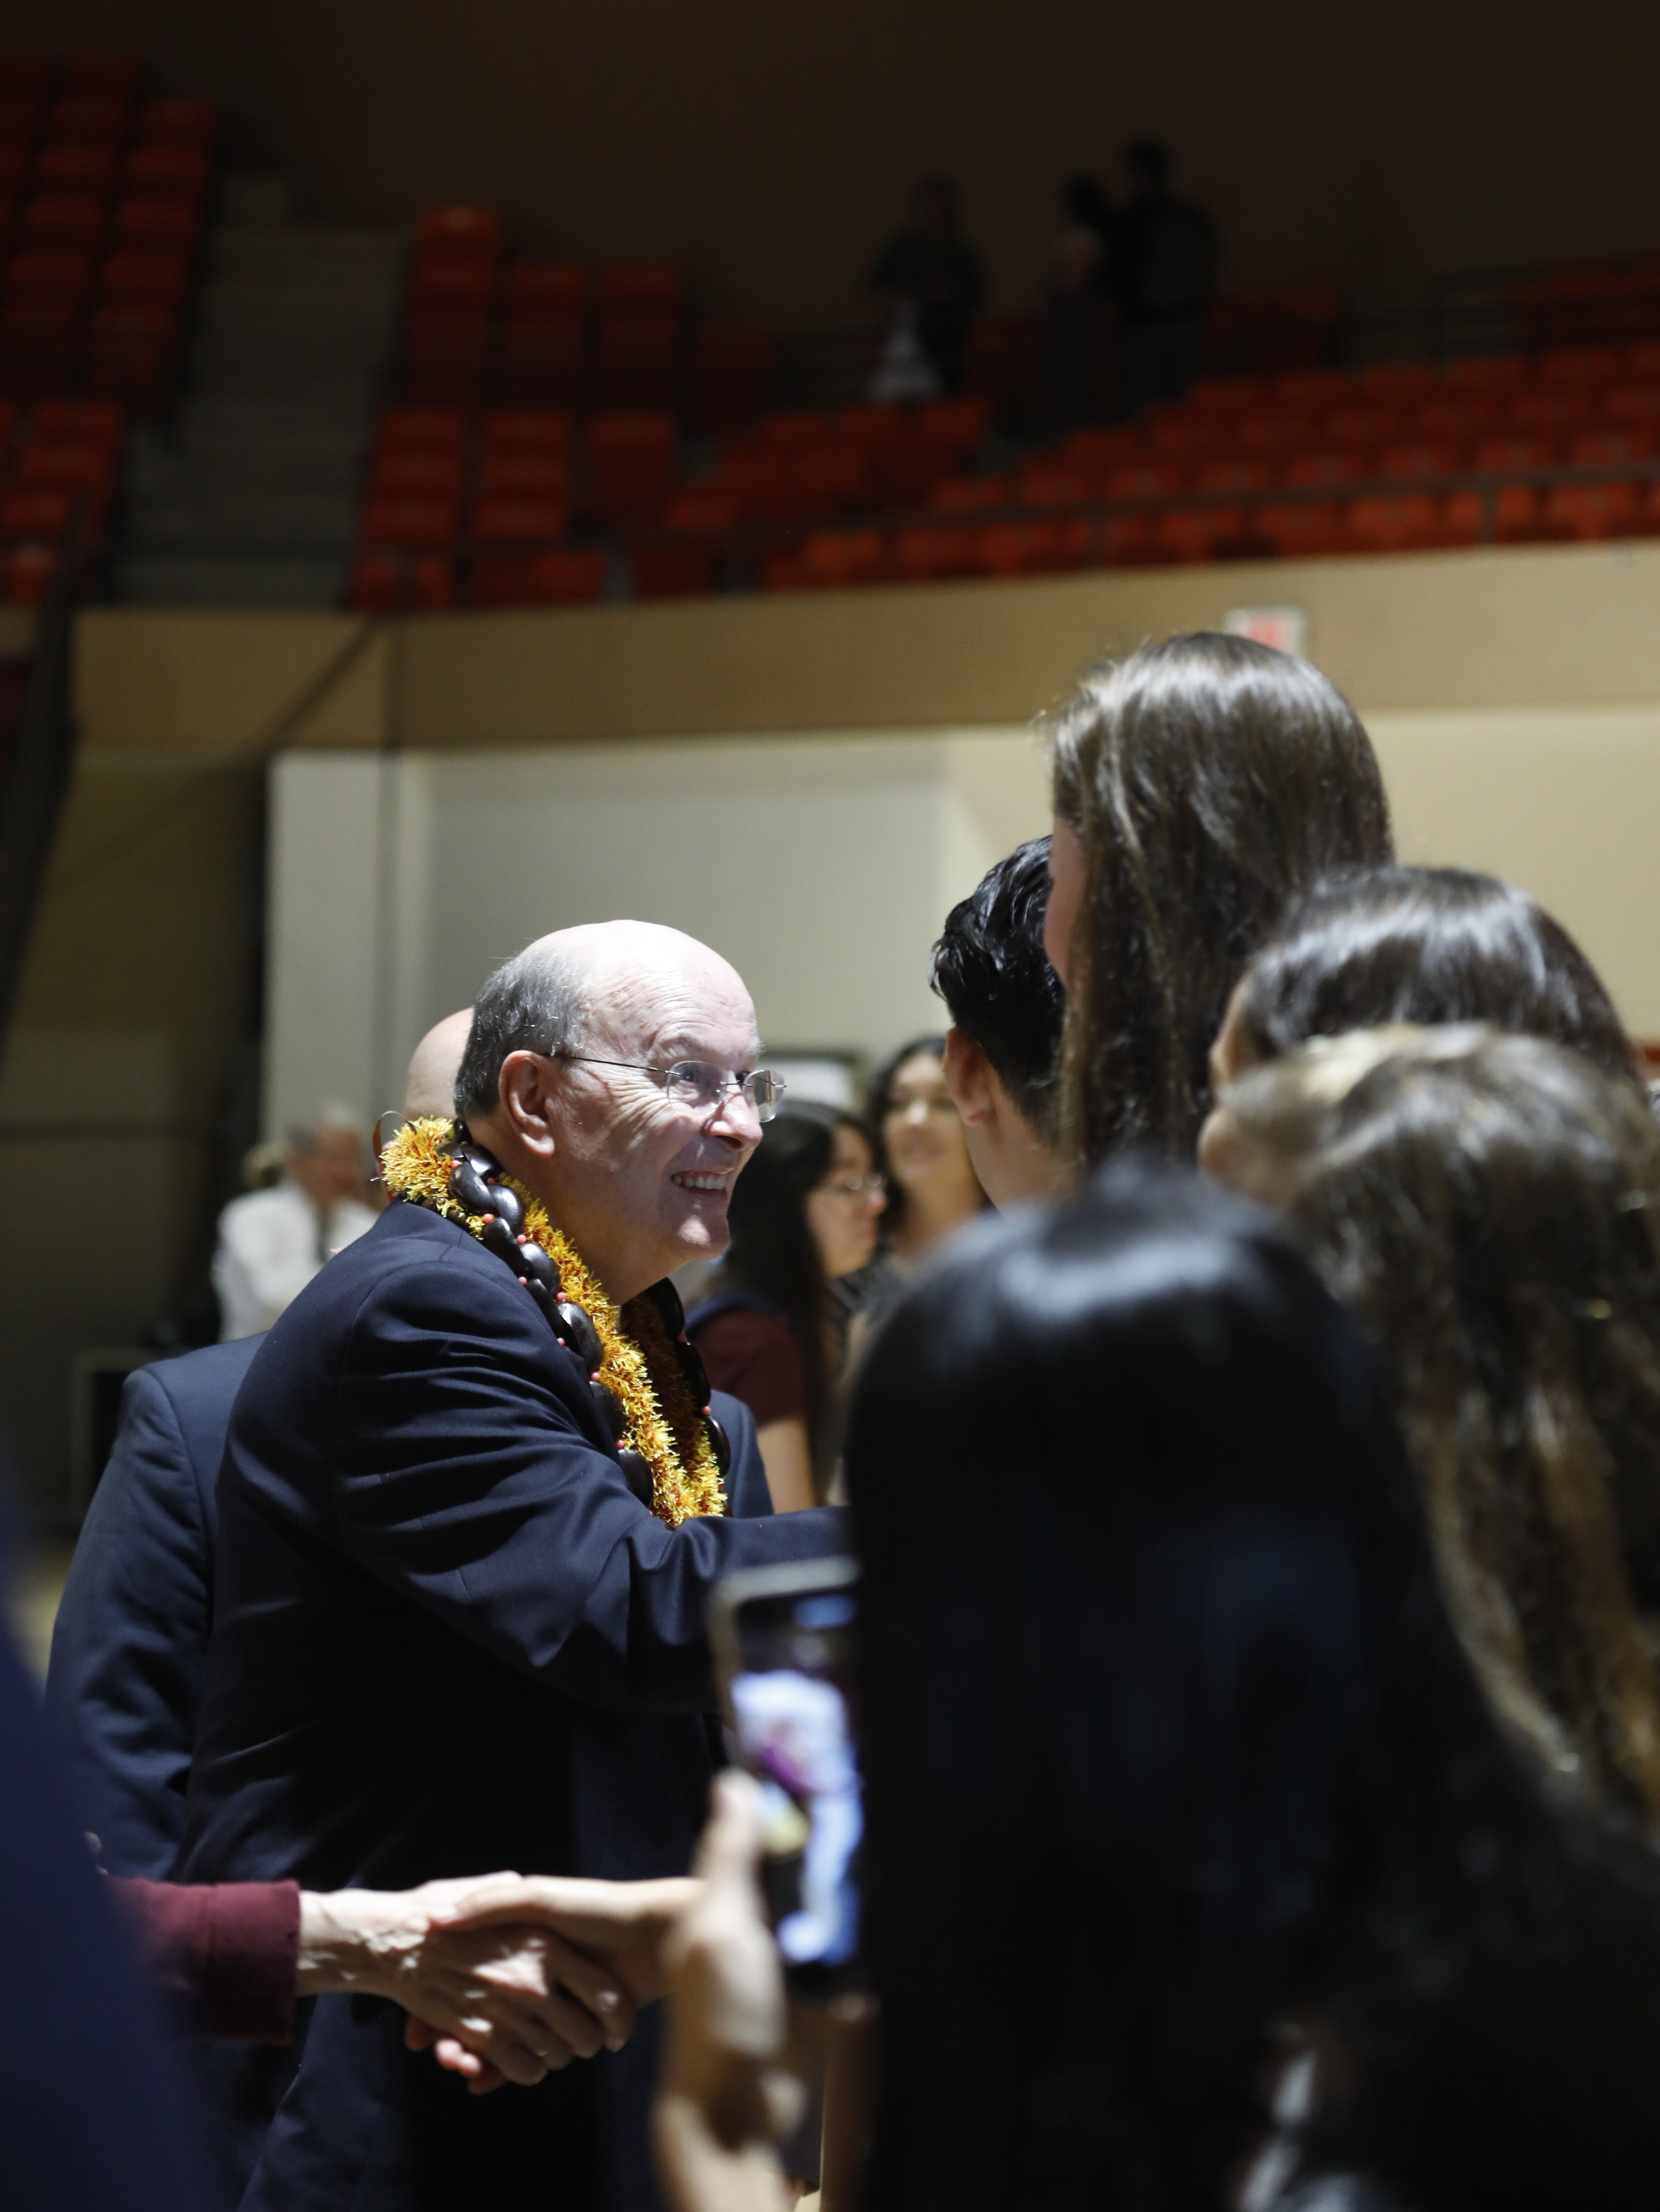 Elder Quentin L. Cook of the Quorum of the Twelve Apostles greets students at a campus devotional at BYU-Hawaii on Nov. 20.